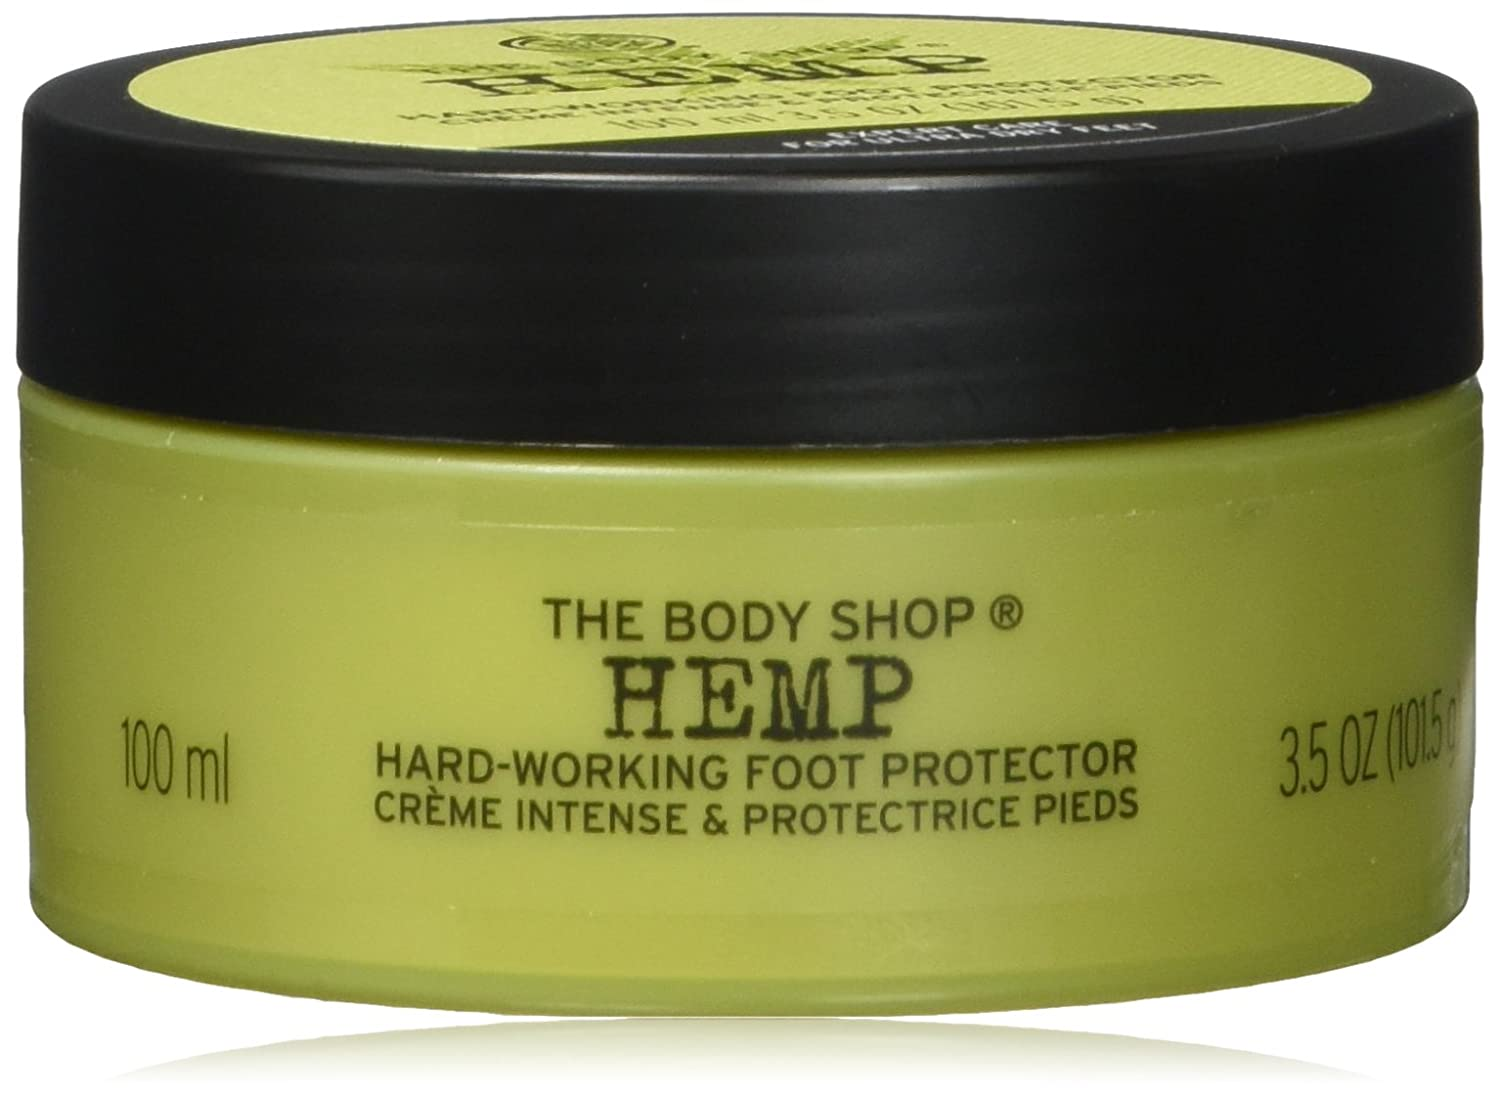 The Body Shop Hemp Hard-Working Foot Protector - 100ml